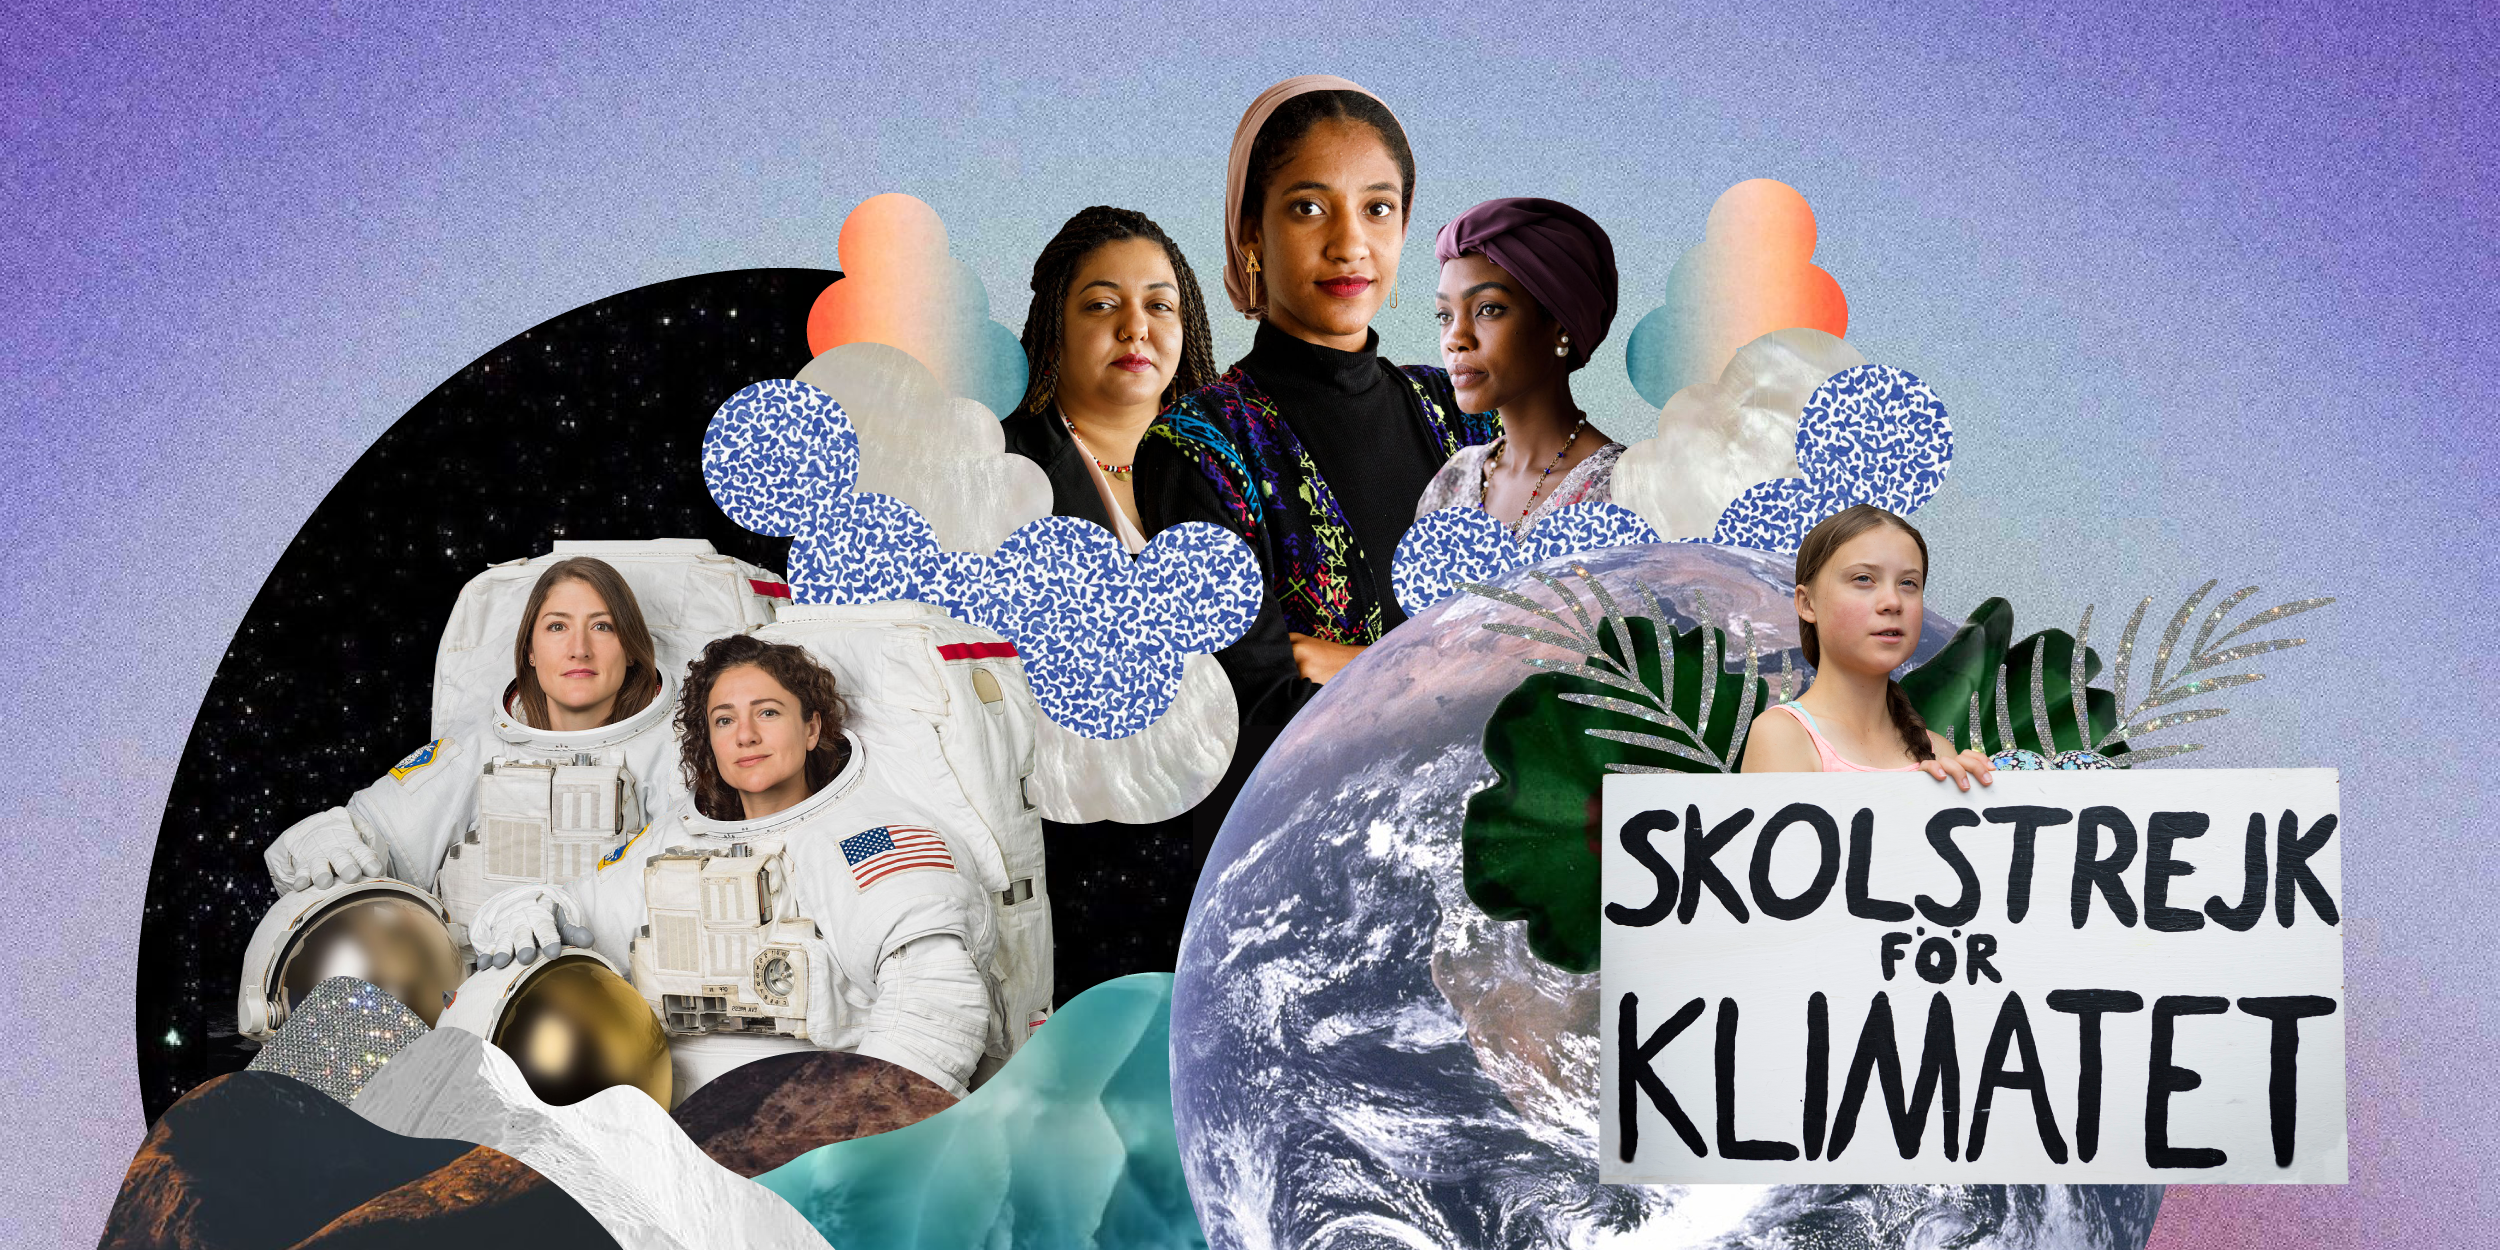 collage of some of the women who defined 2019: Women astronauts, Sudanese activists and Greta Thunberg